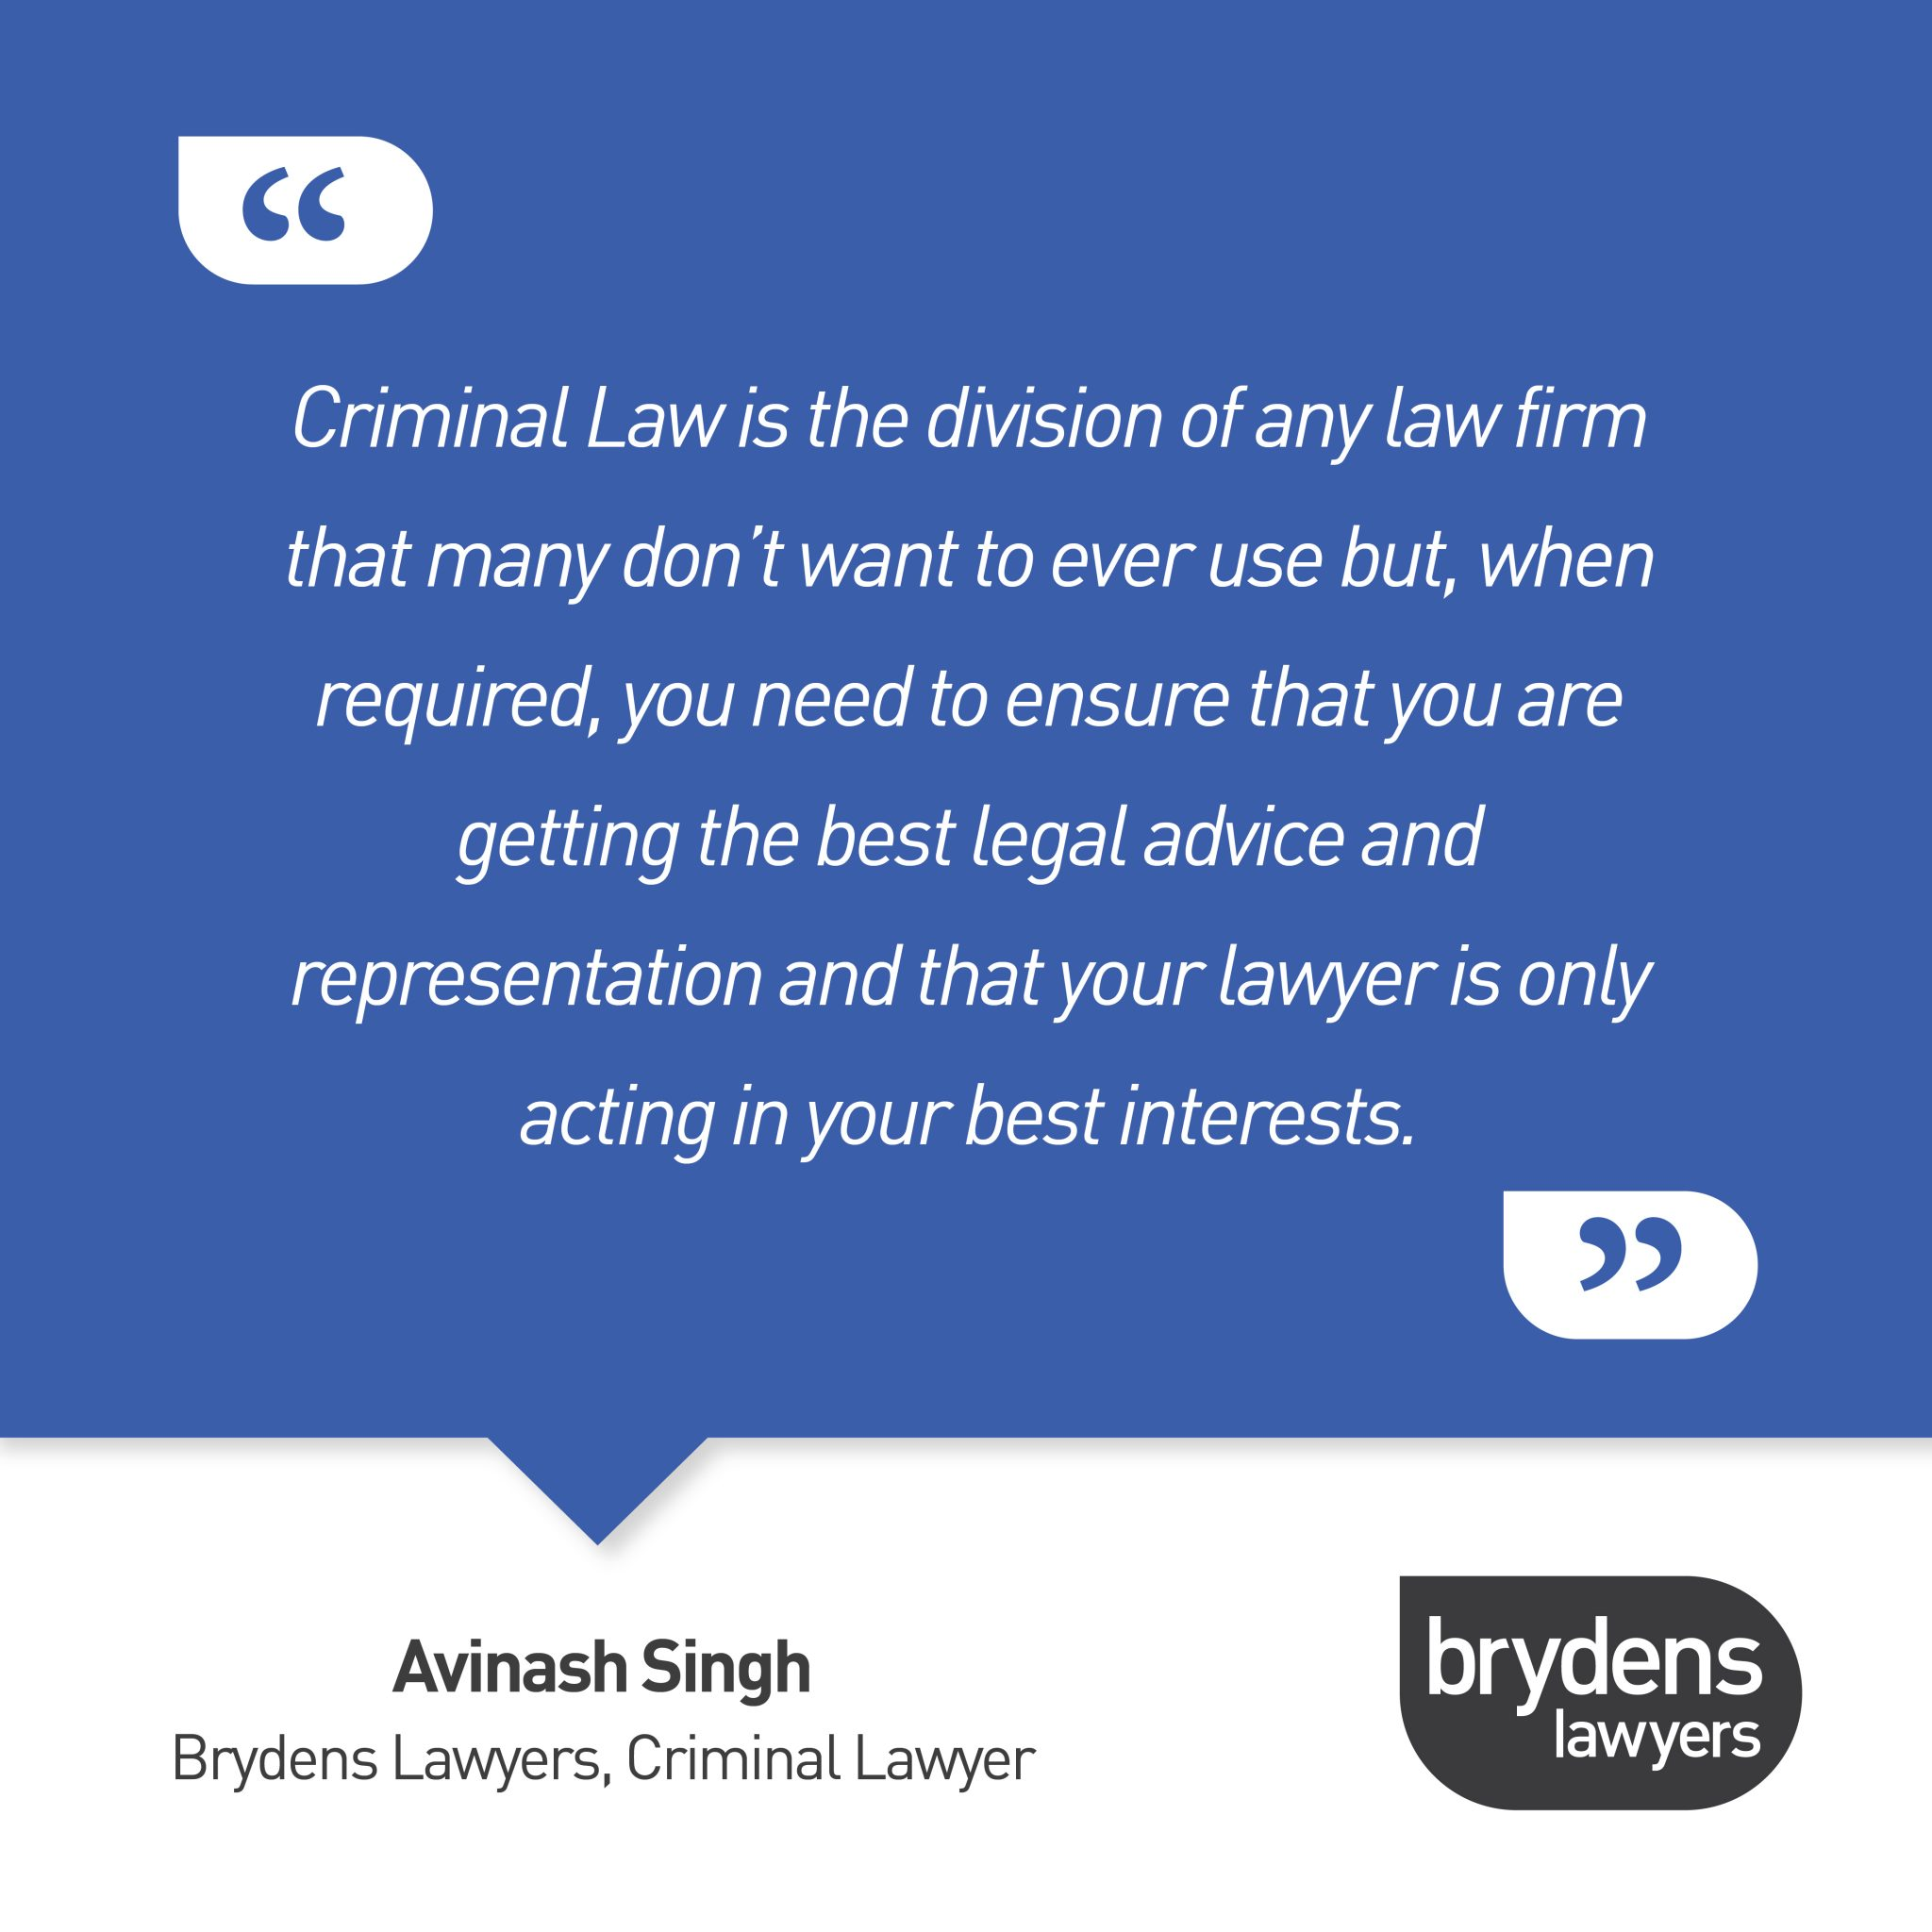 , Criminal Law, Brydens Lawyers